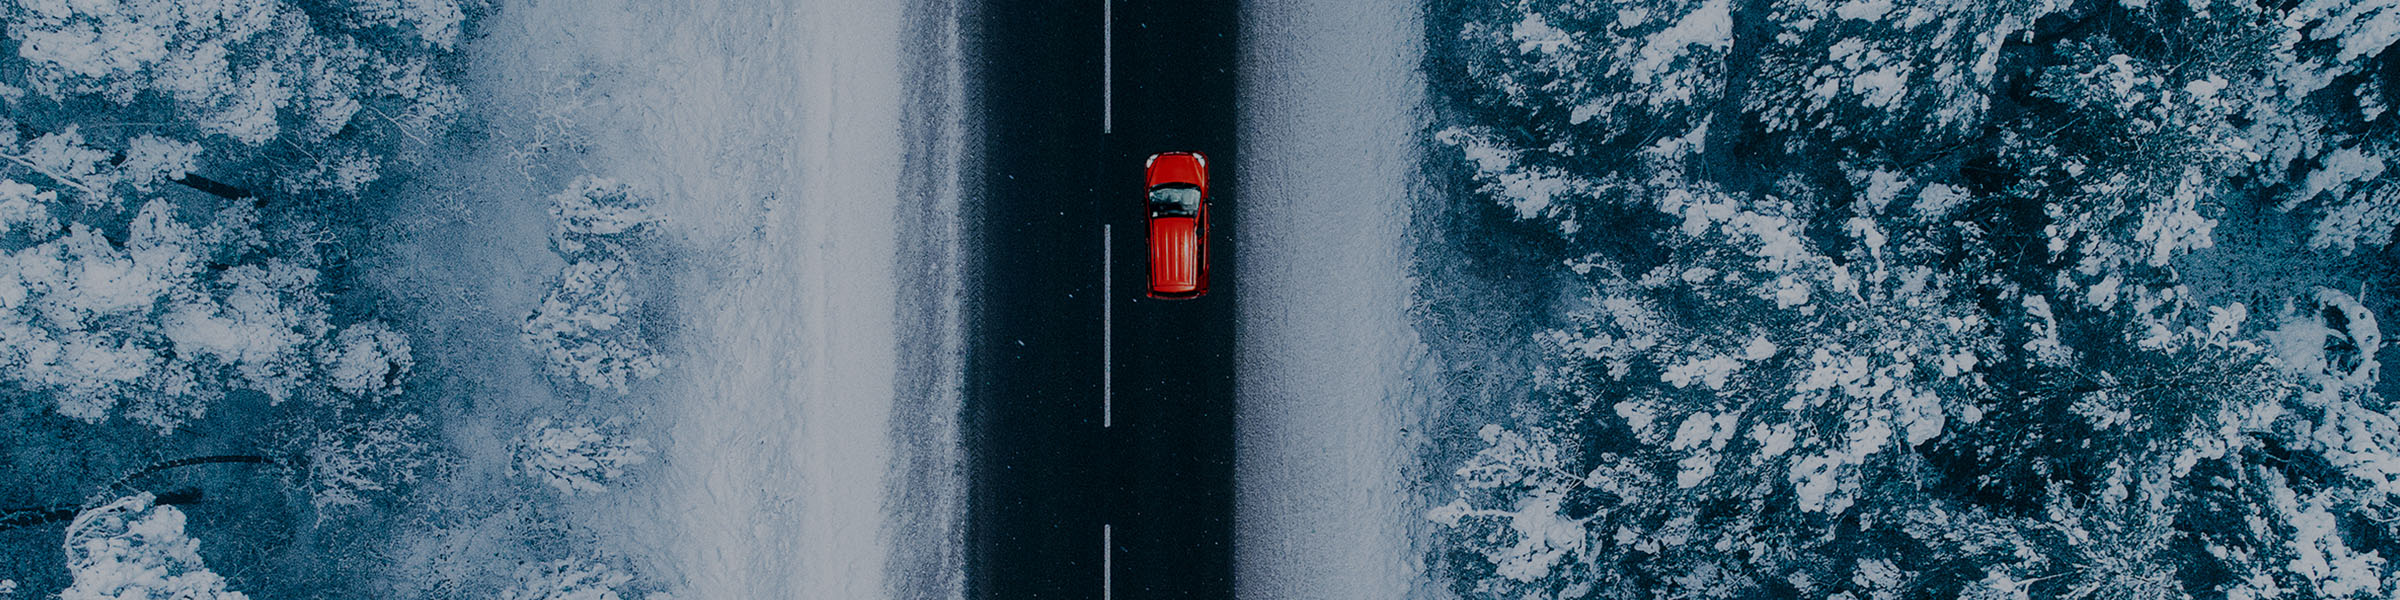 898903008-VF-Business-Macro-Aerial-view-snow-road-red-car